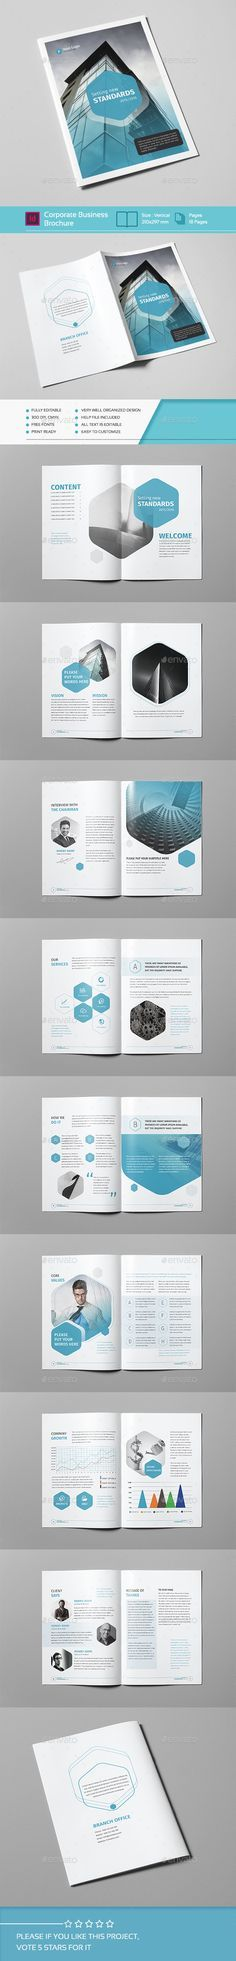 "Corporate Business Brochure 18 Pages A4 Template PSD <a class=""pintag"" href=""/explore/design/"" title=""#design explore Pinterest"">#design</a> Download: <a href=""http://graphicriver.net/item/corporate-business-brochure-18-pages-a4/13909294?ref=ksioks"" rel=""nofollow"" target=""_blank"">graphicriver.net/...</a>"